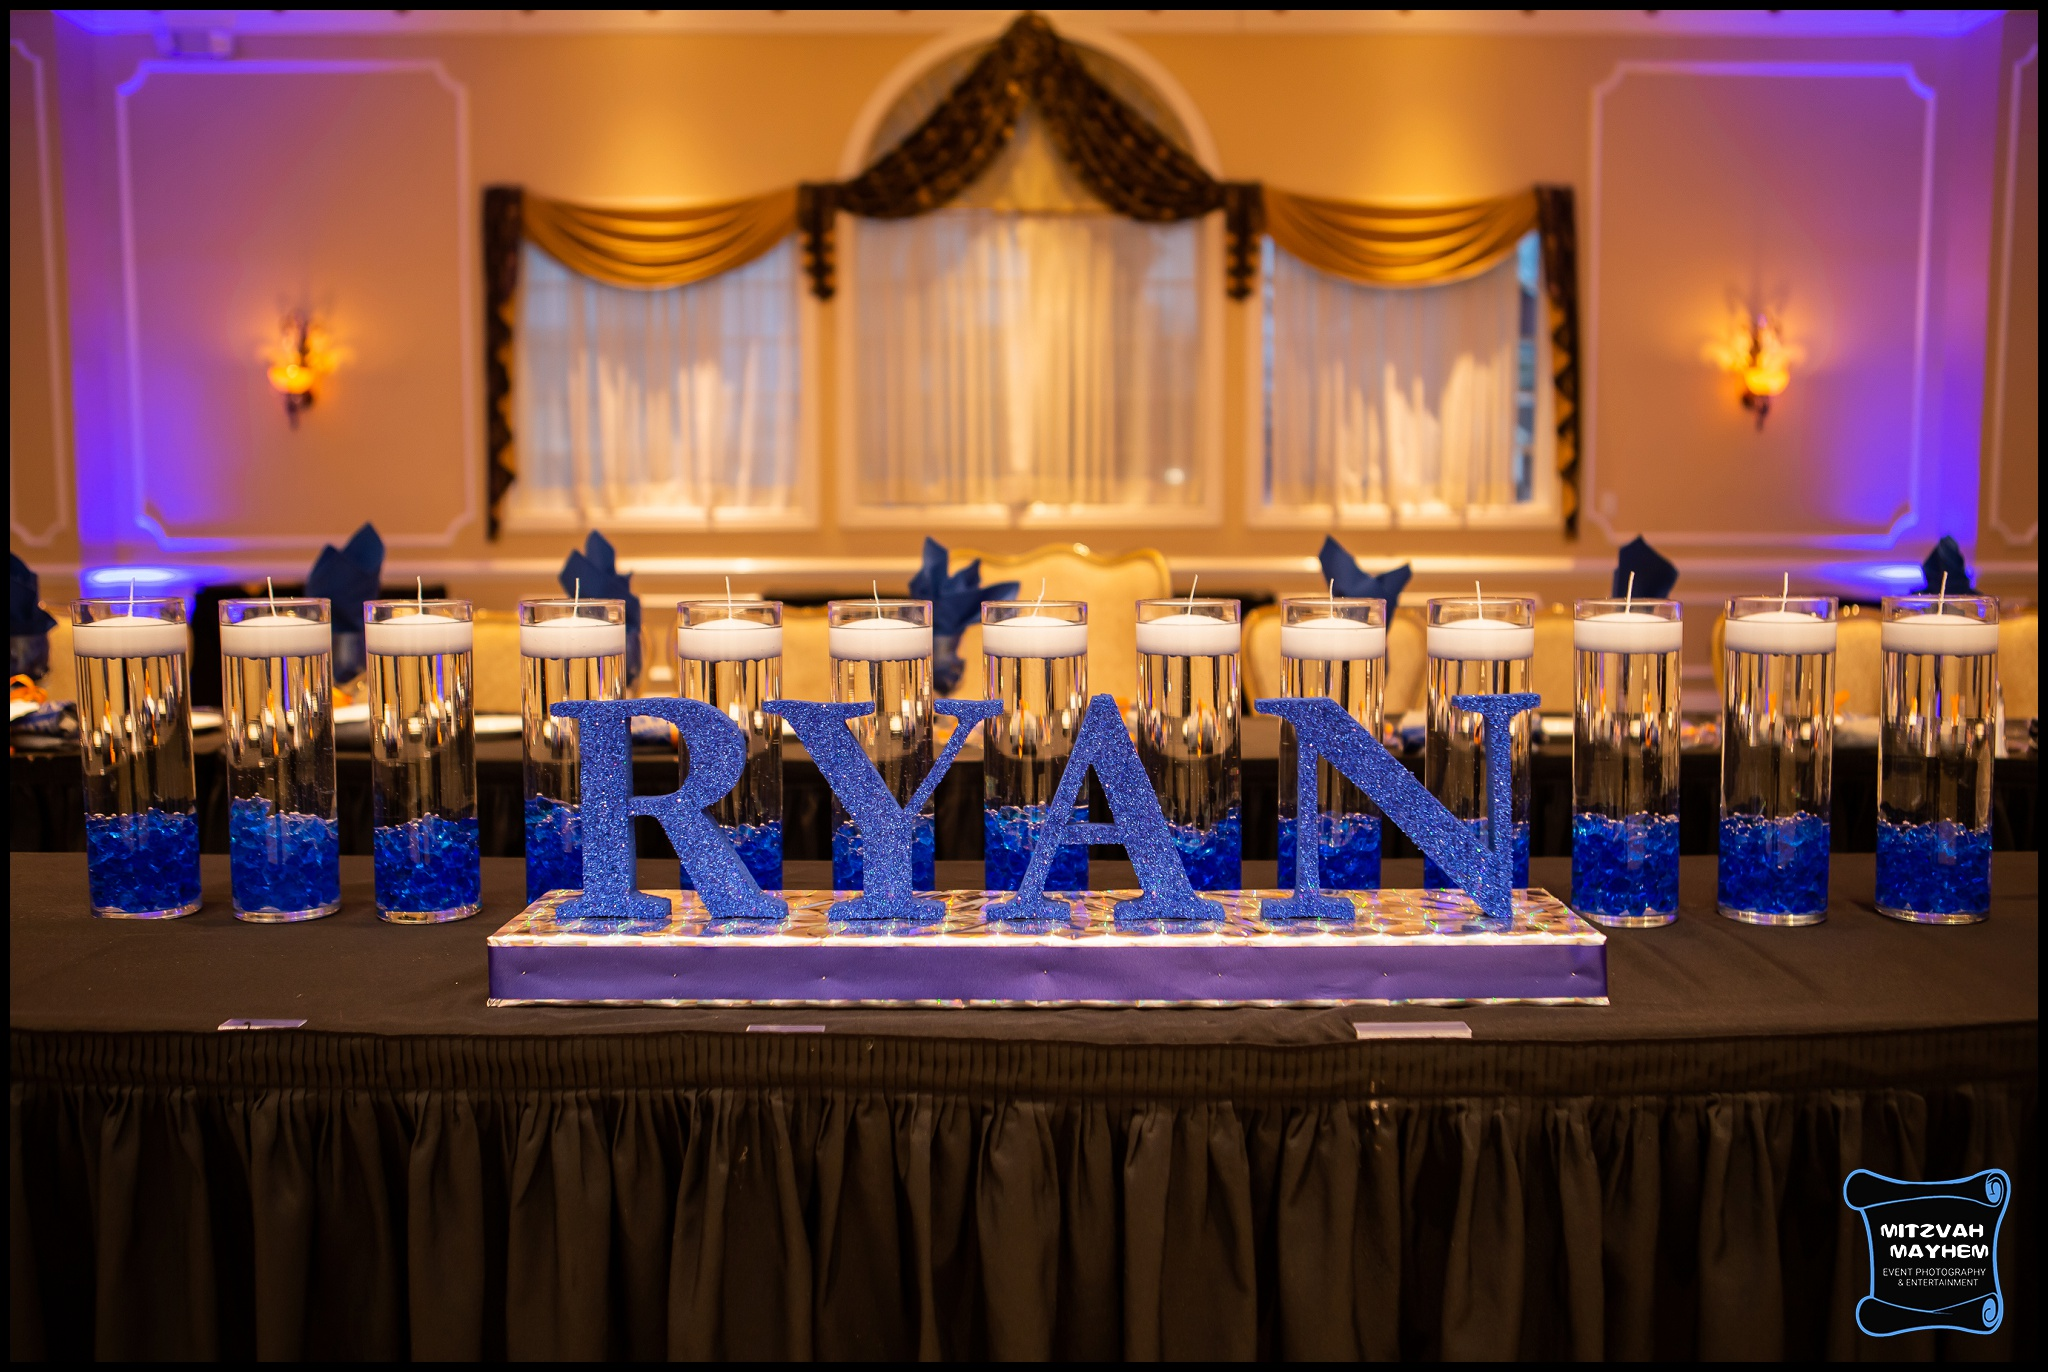 nj-mitzvah-photographer-jacques-caterers-19.JPG